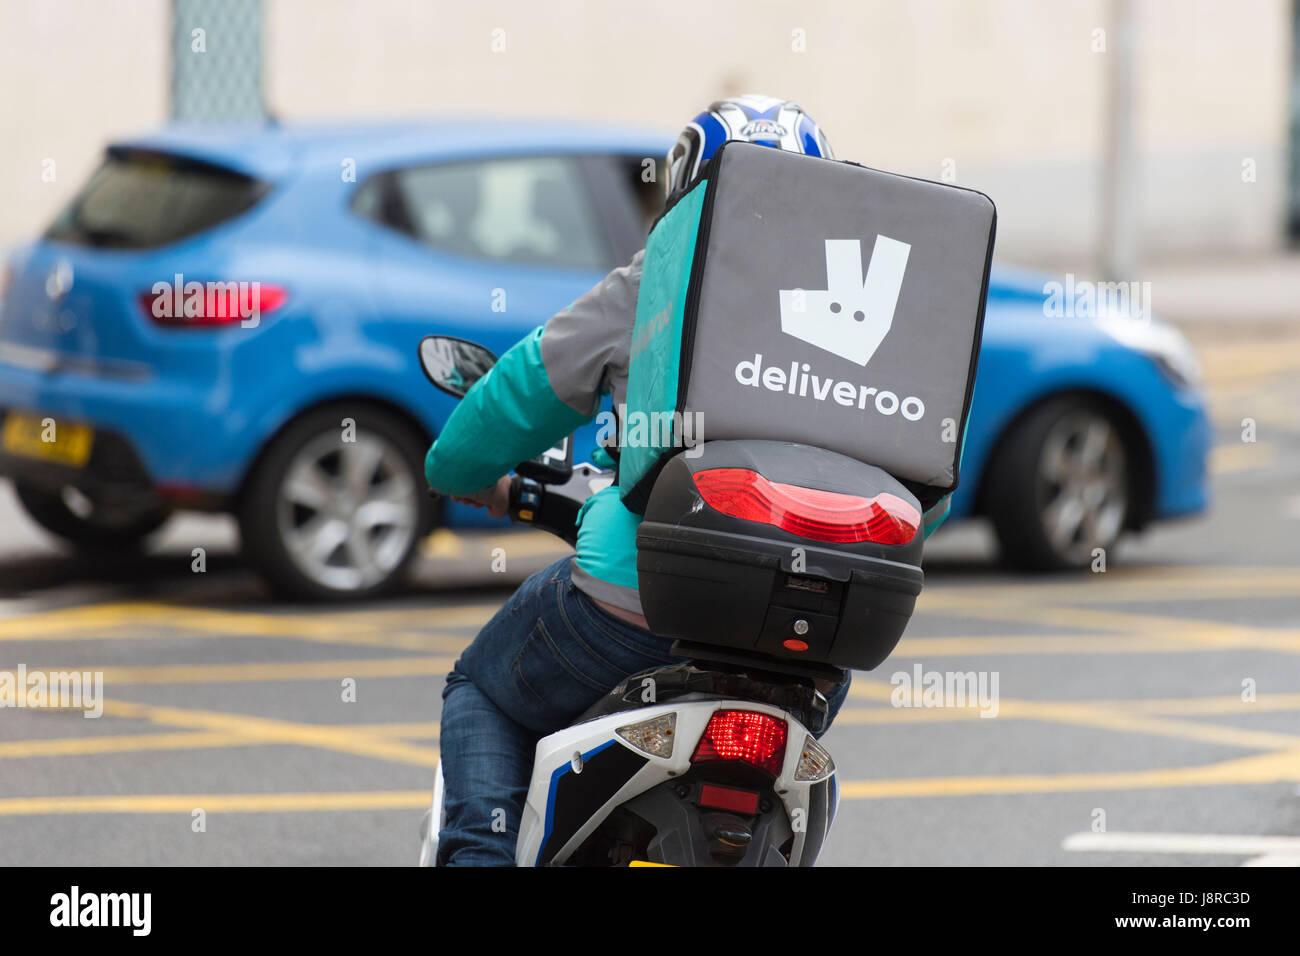 A Deliveroo rider on a moped making a food delivery in Cardiff, Wales, UK. Stock Photo